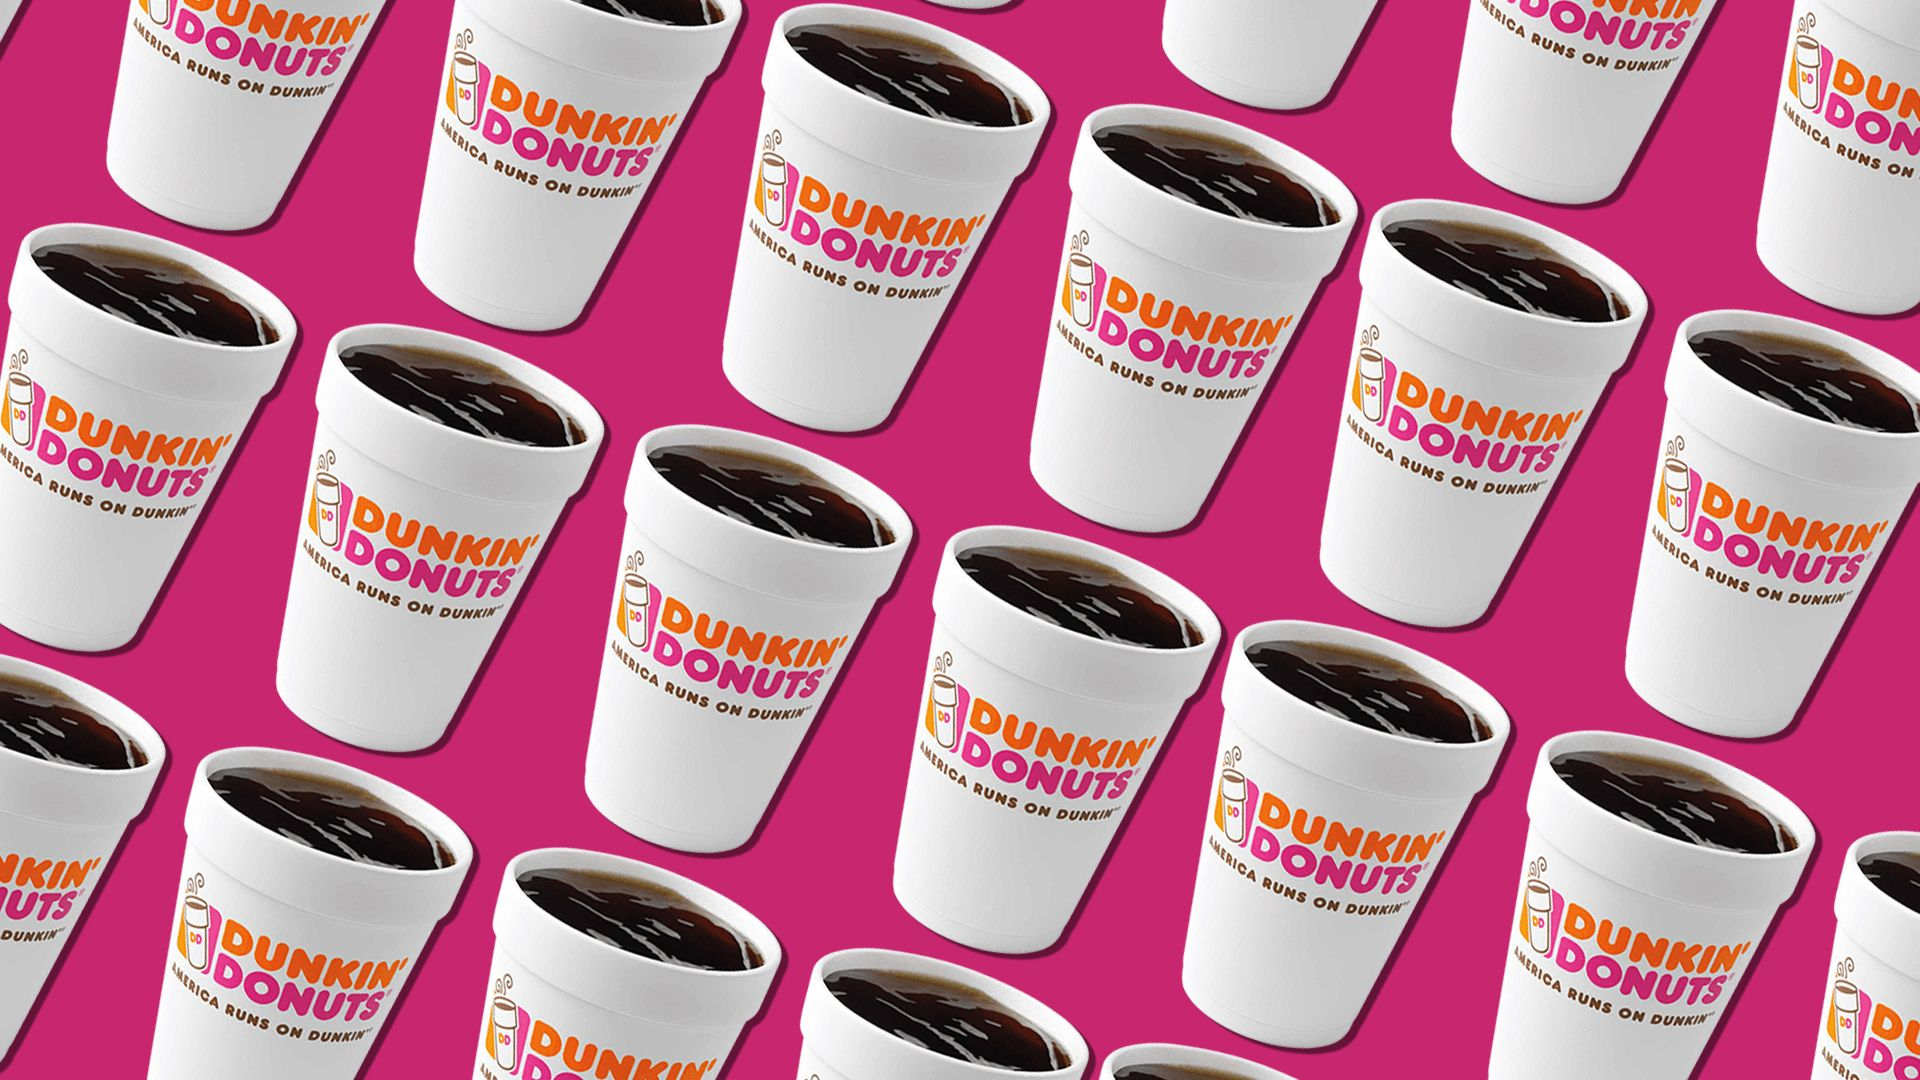 1920x1080 Dunkin' Donuts has a new name drops Donuts officially